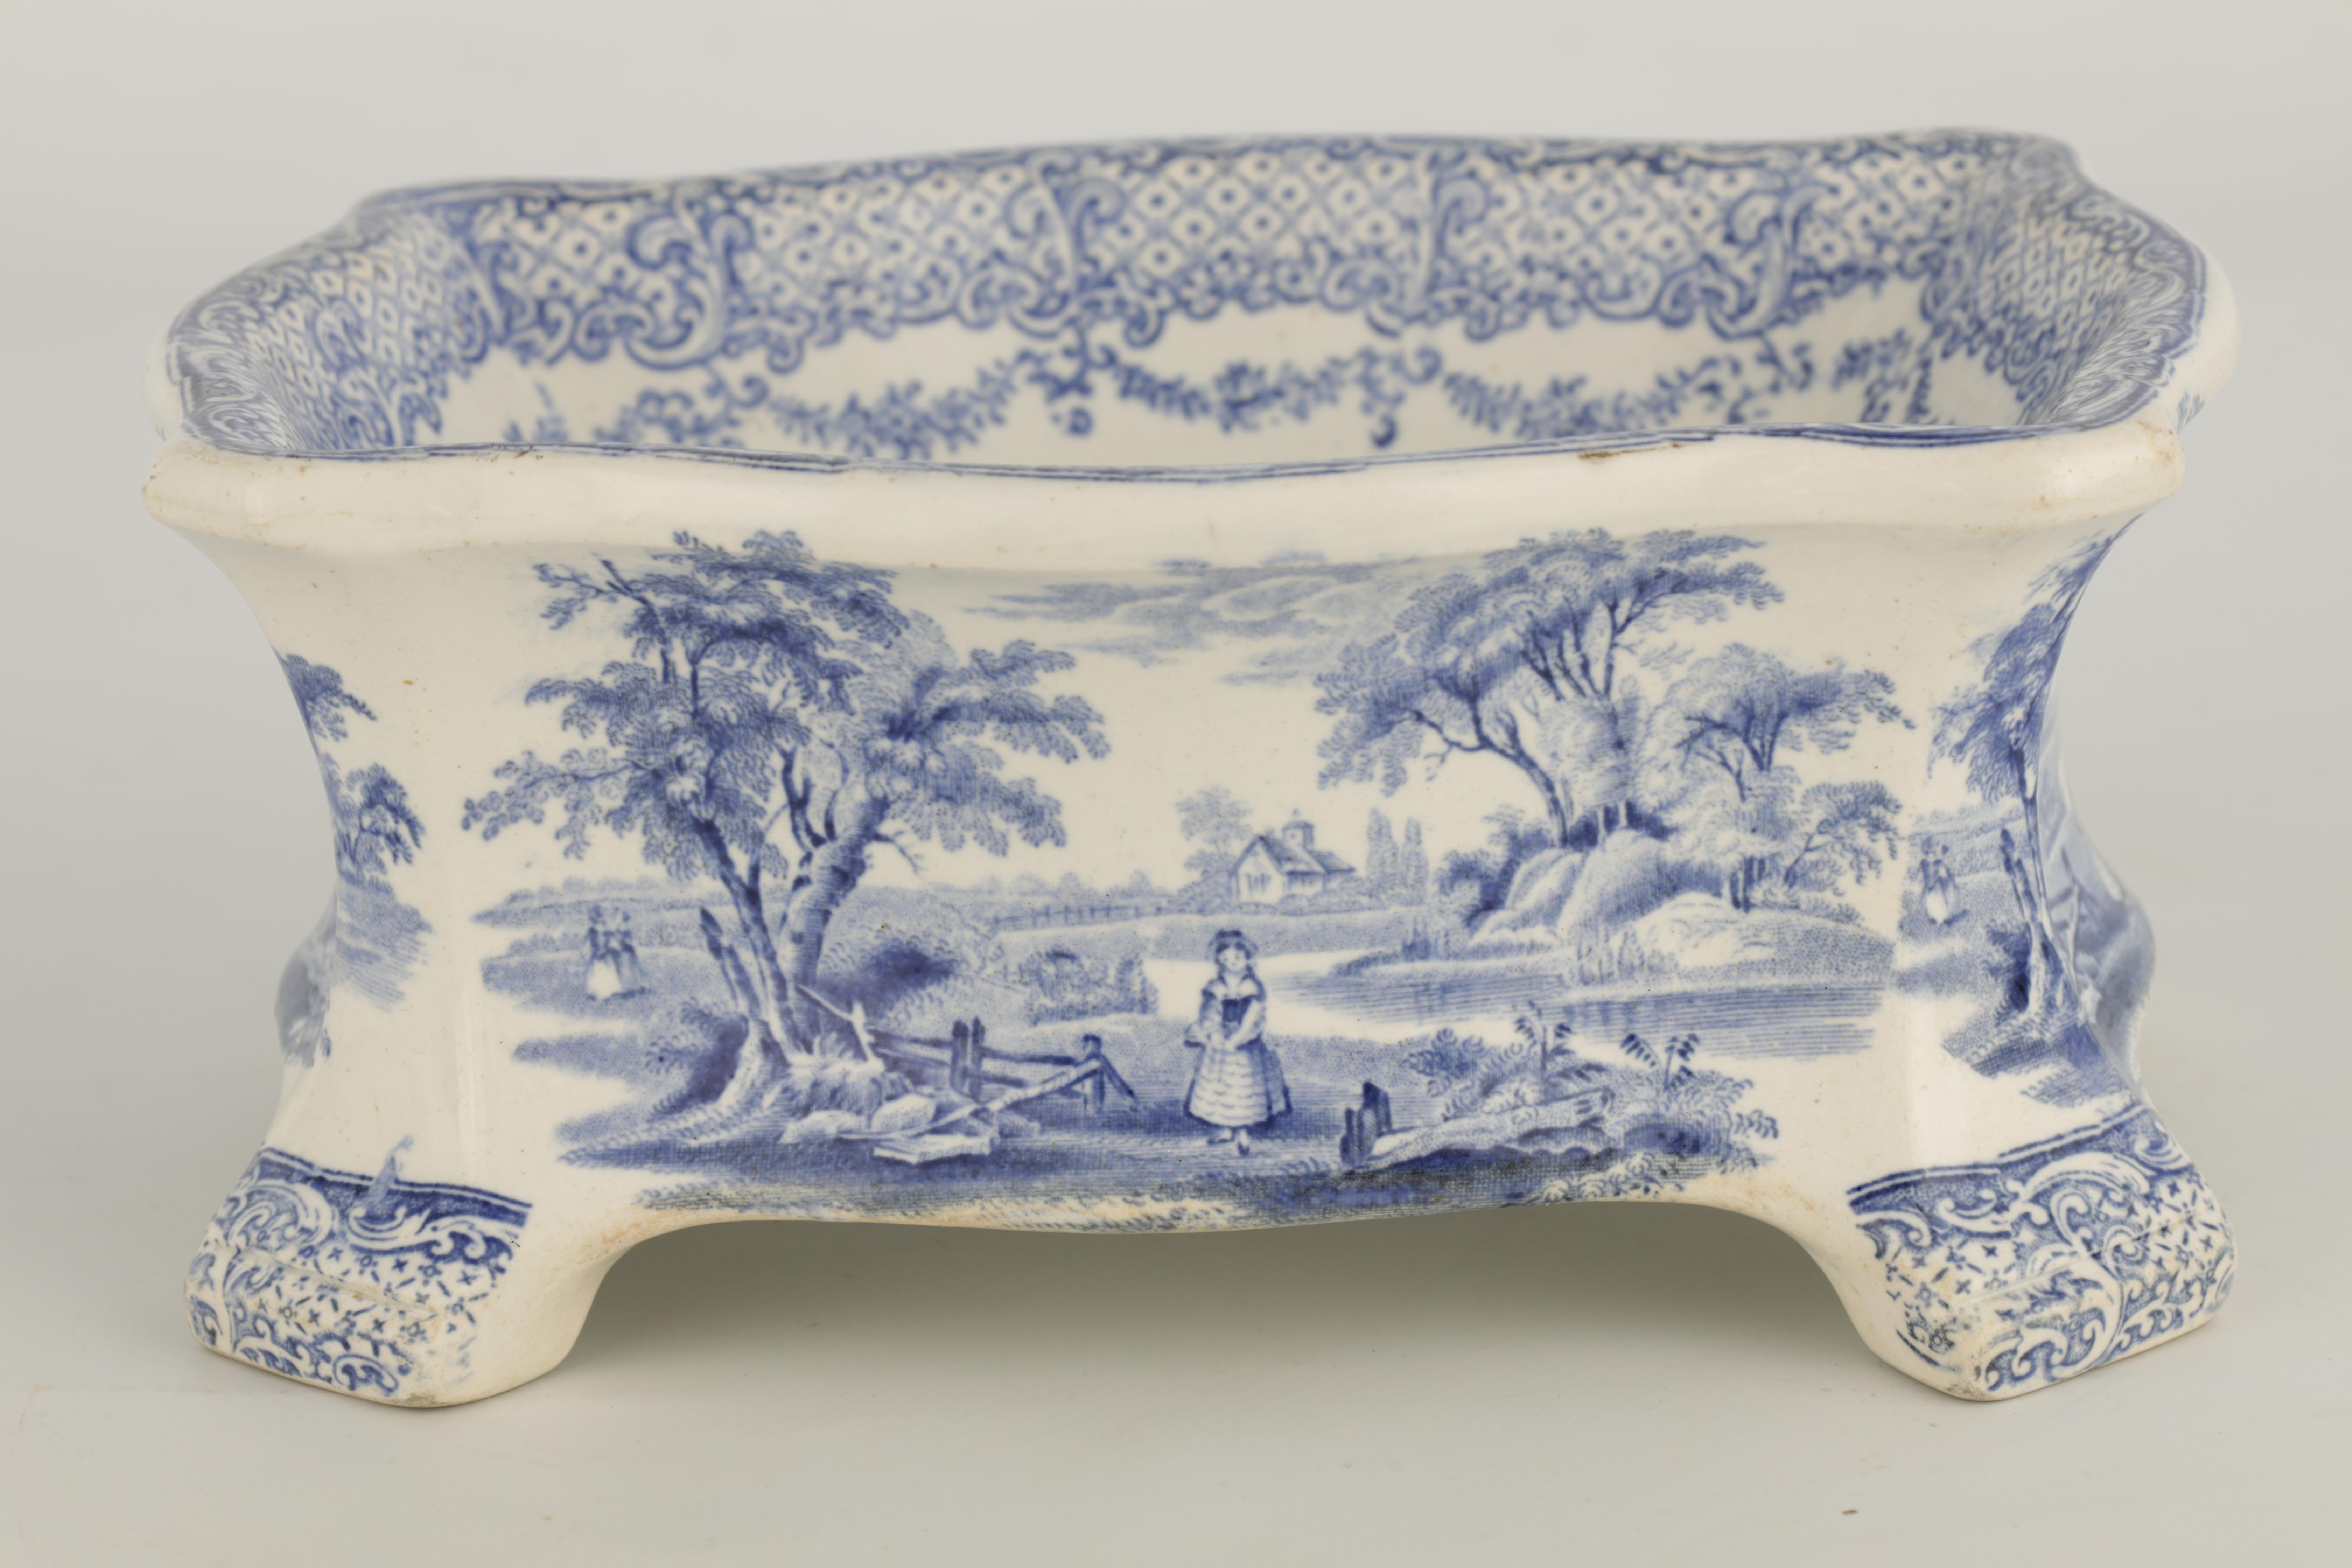 A RARE 19TH CENTURY RIDGWAY BLUE AND WHITE POTTERY DOG BOWL decorated with landscape scenes - Image 6 of 7